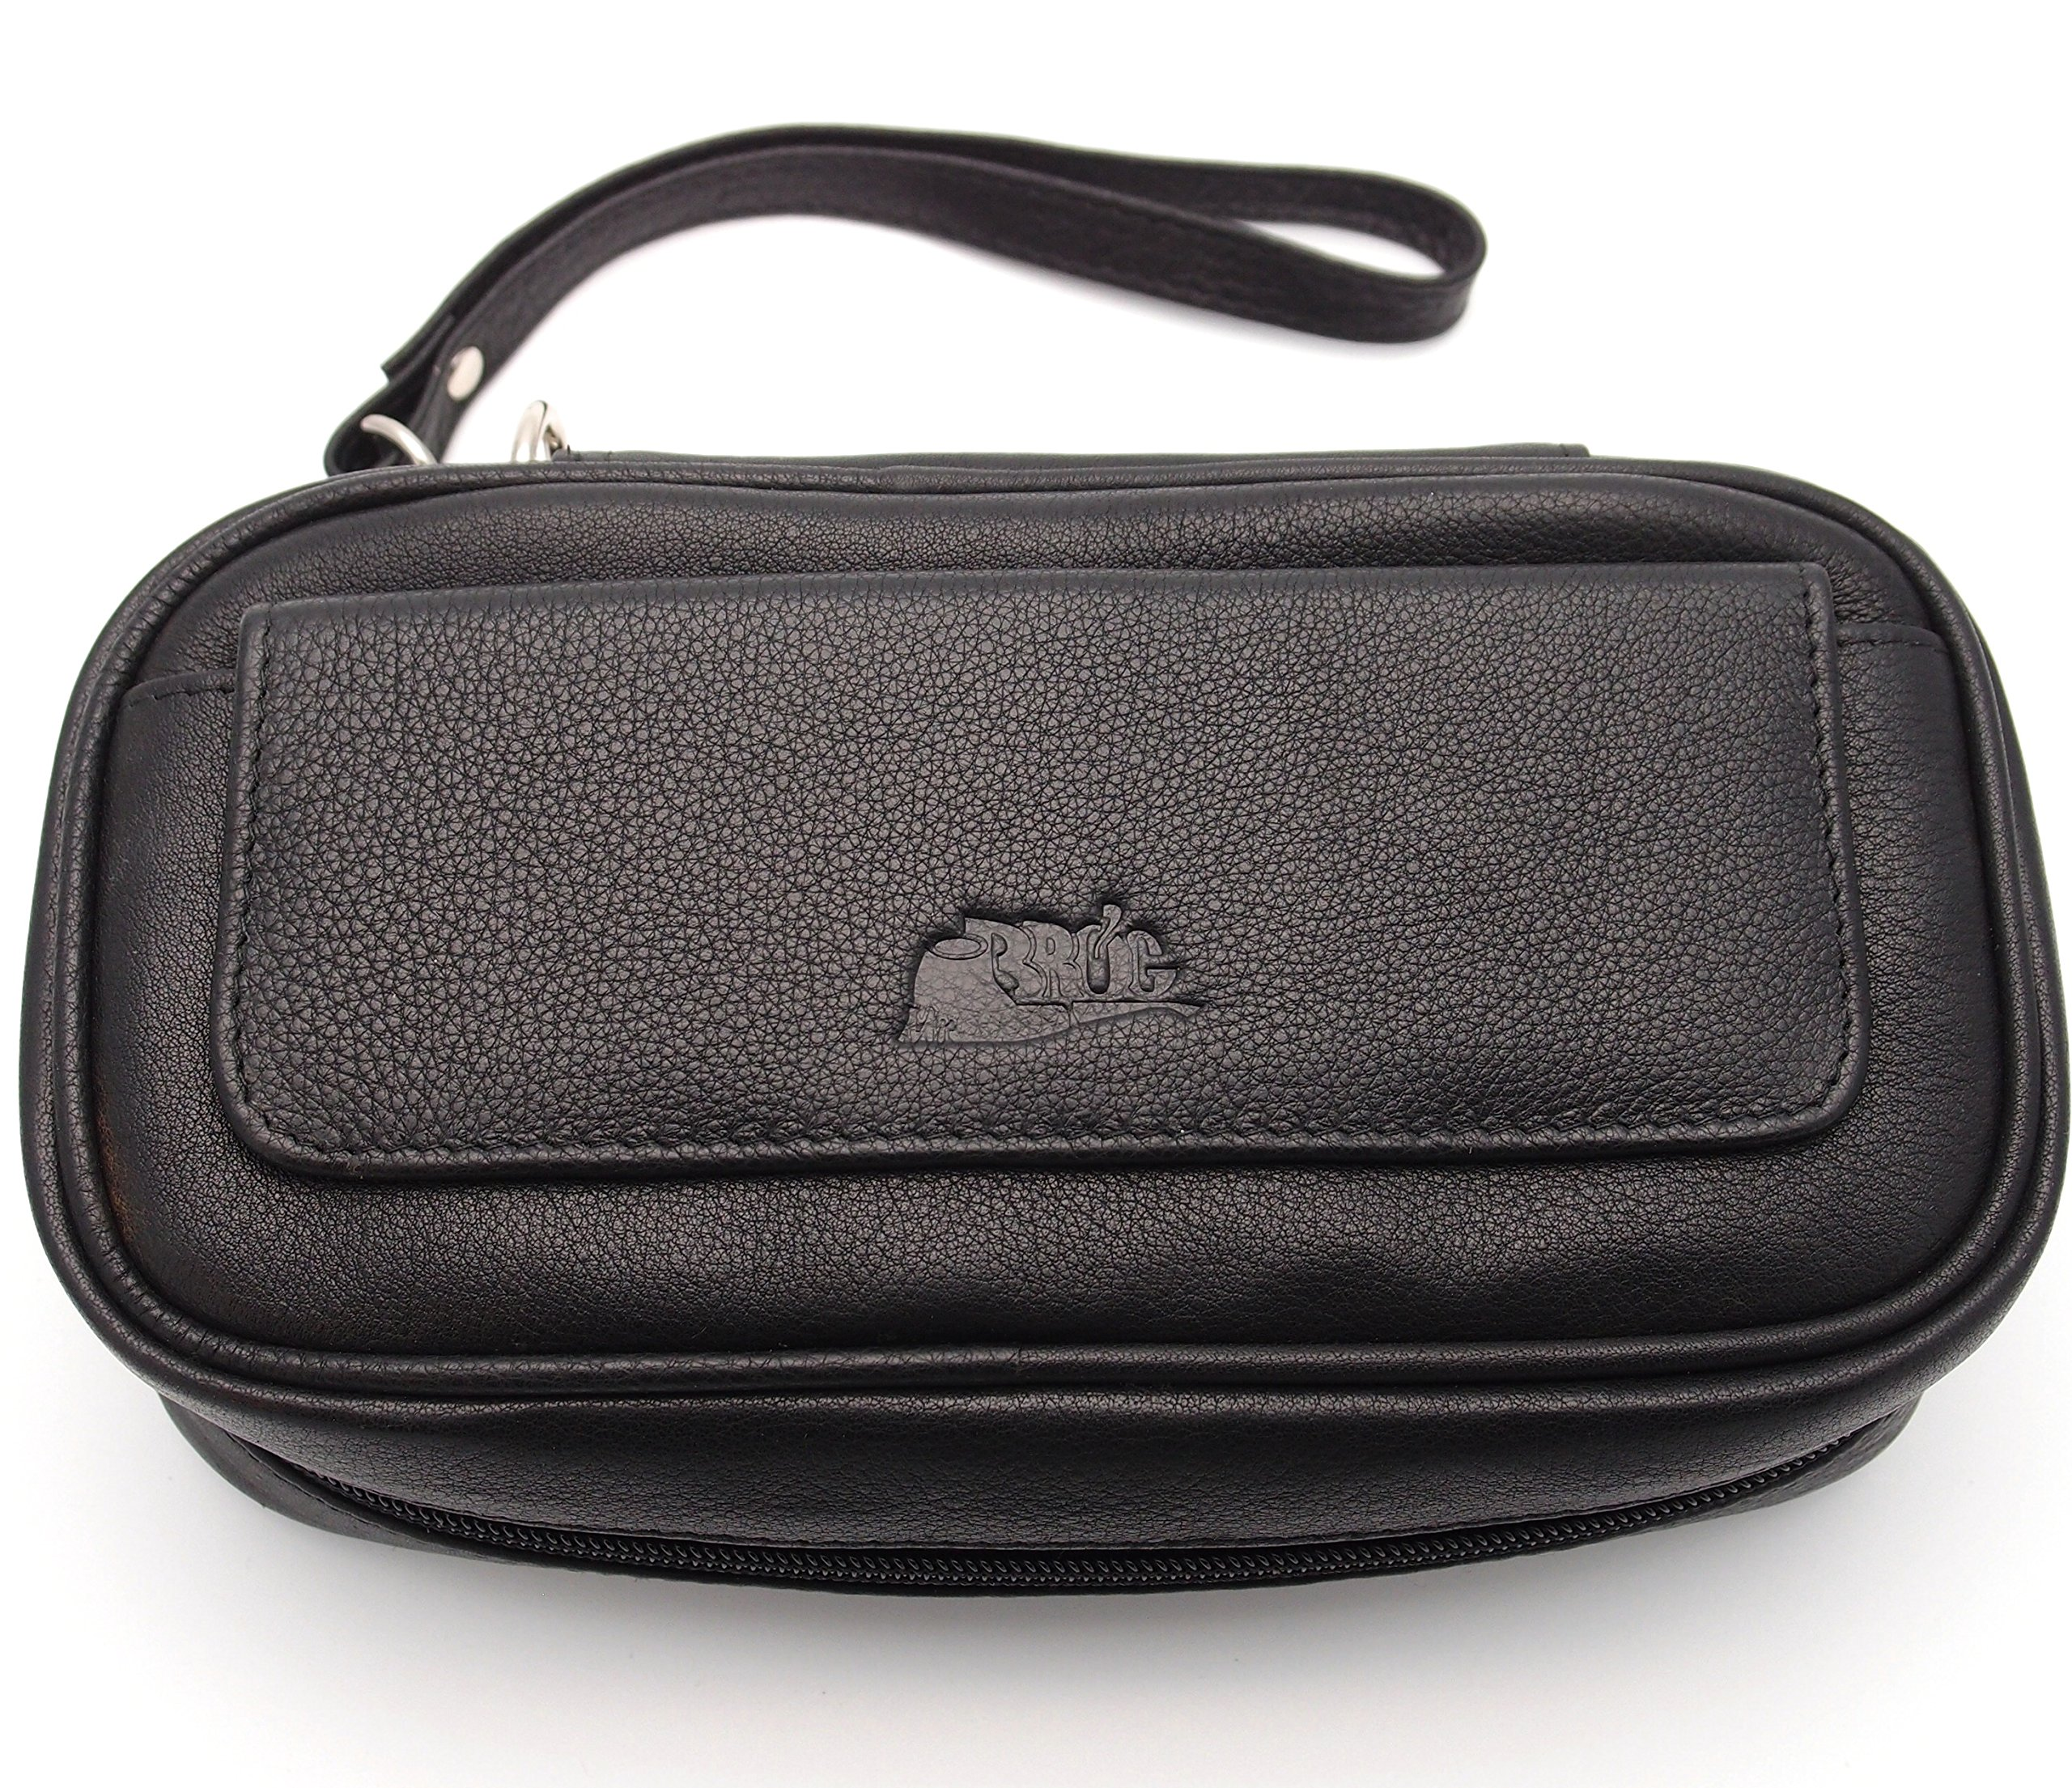 Tobacco Pipe Leather Case - 3 Pipes - Authentic Full Grade Leather - Black